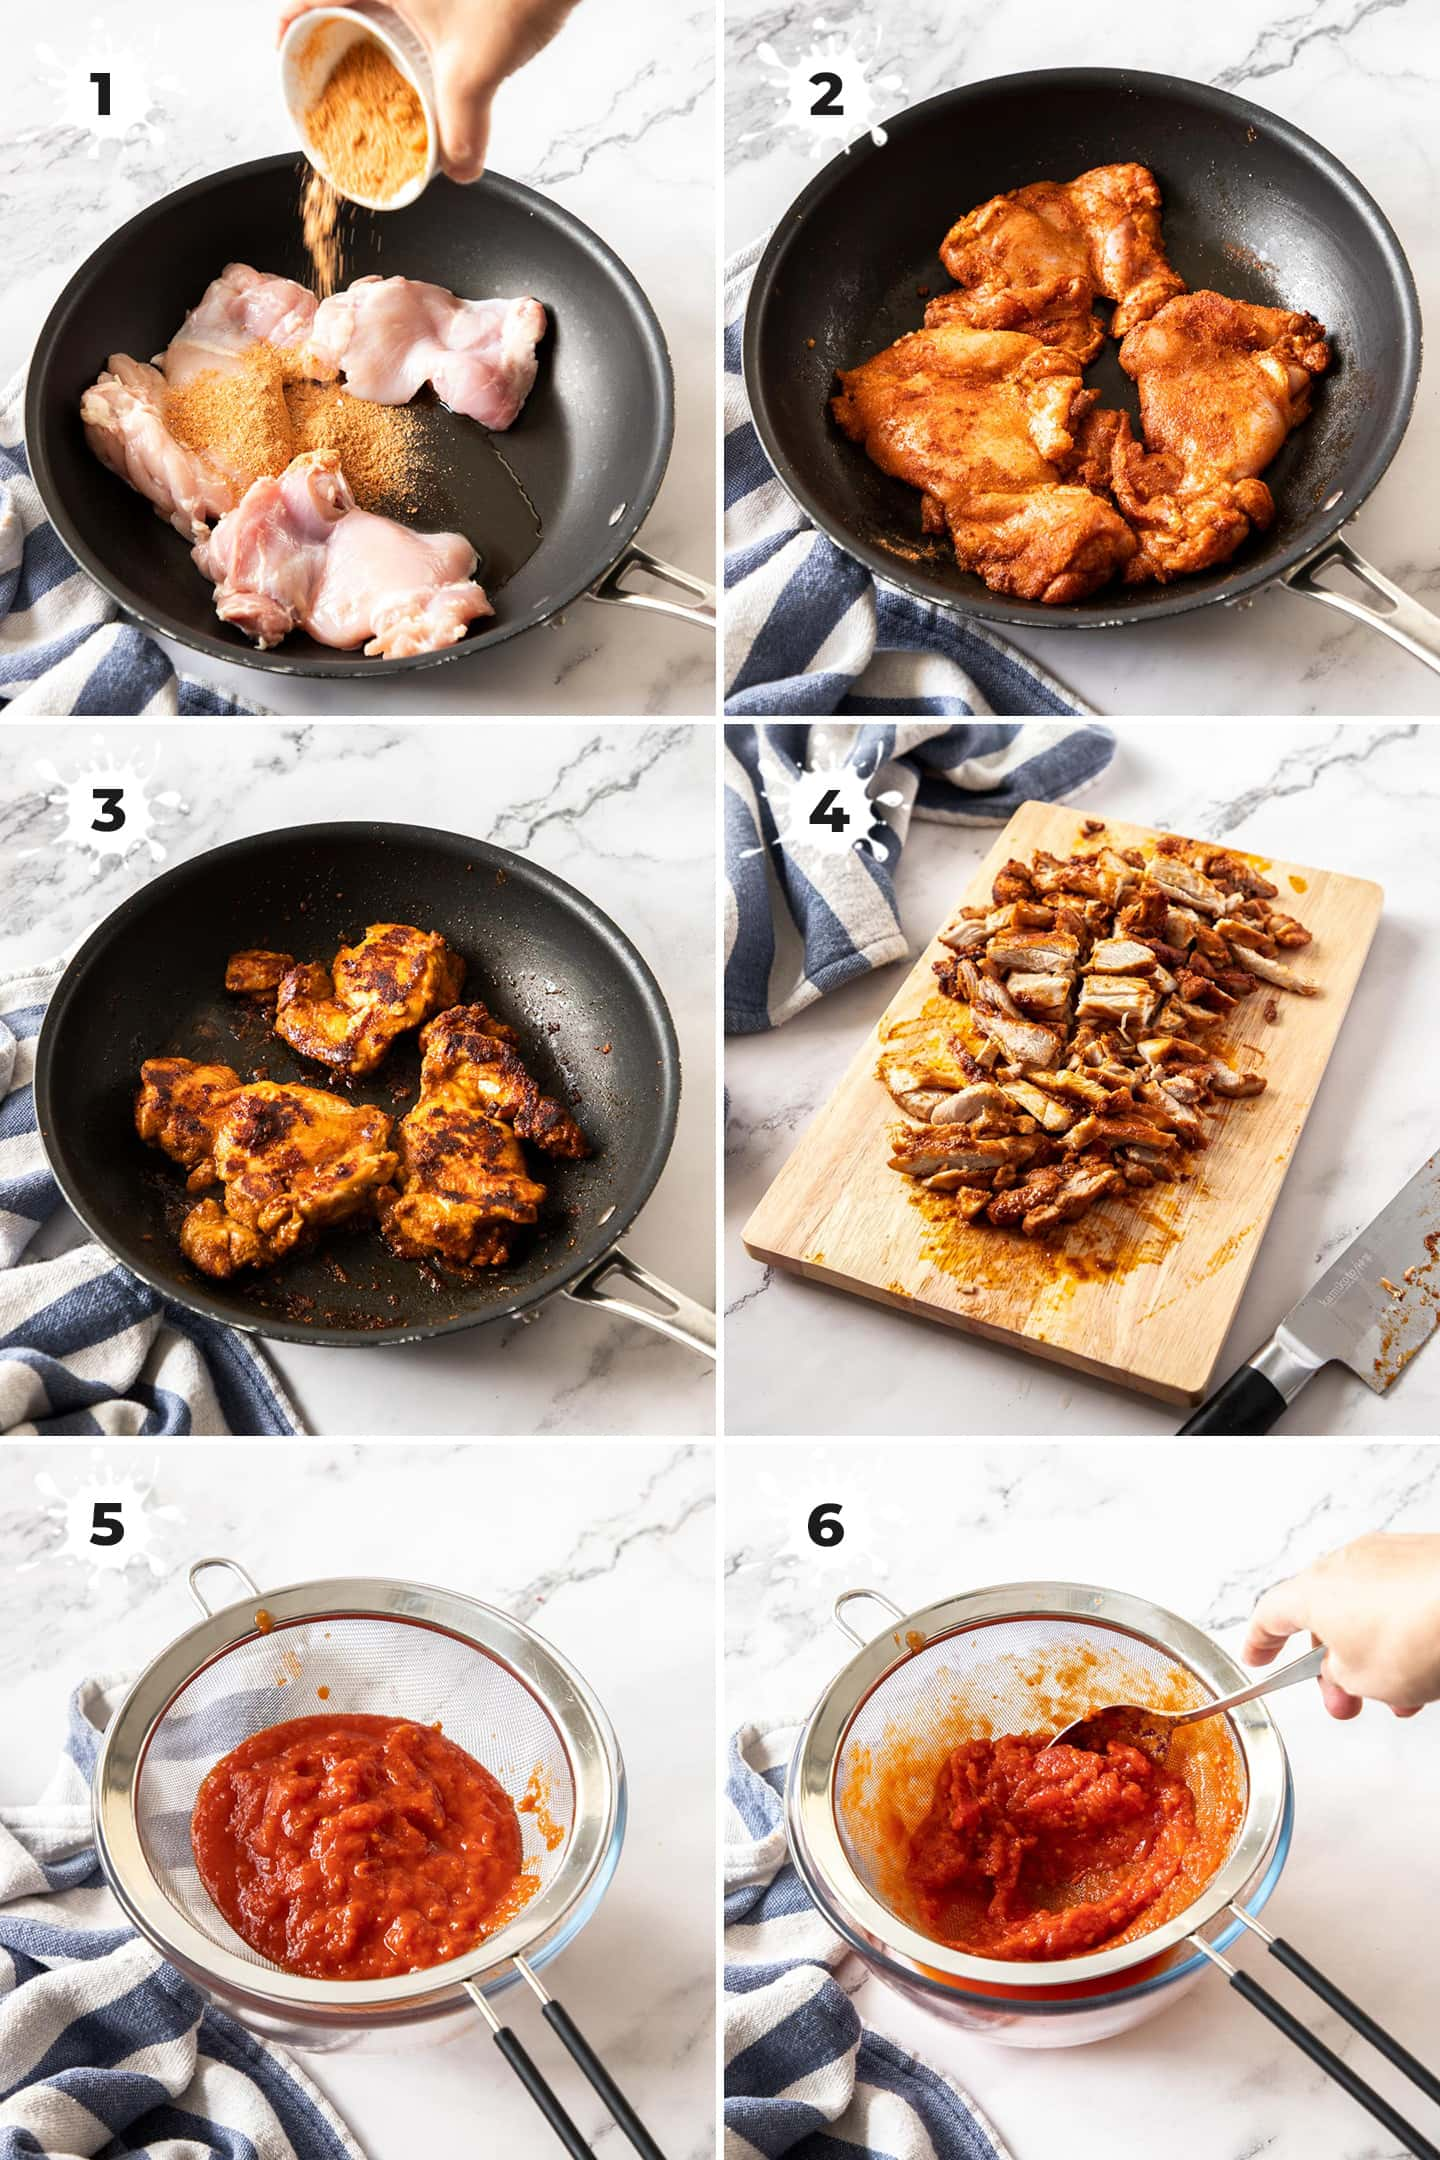 6 images showing cooking fajita chicken and straining tomatoes